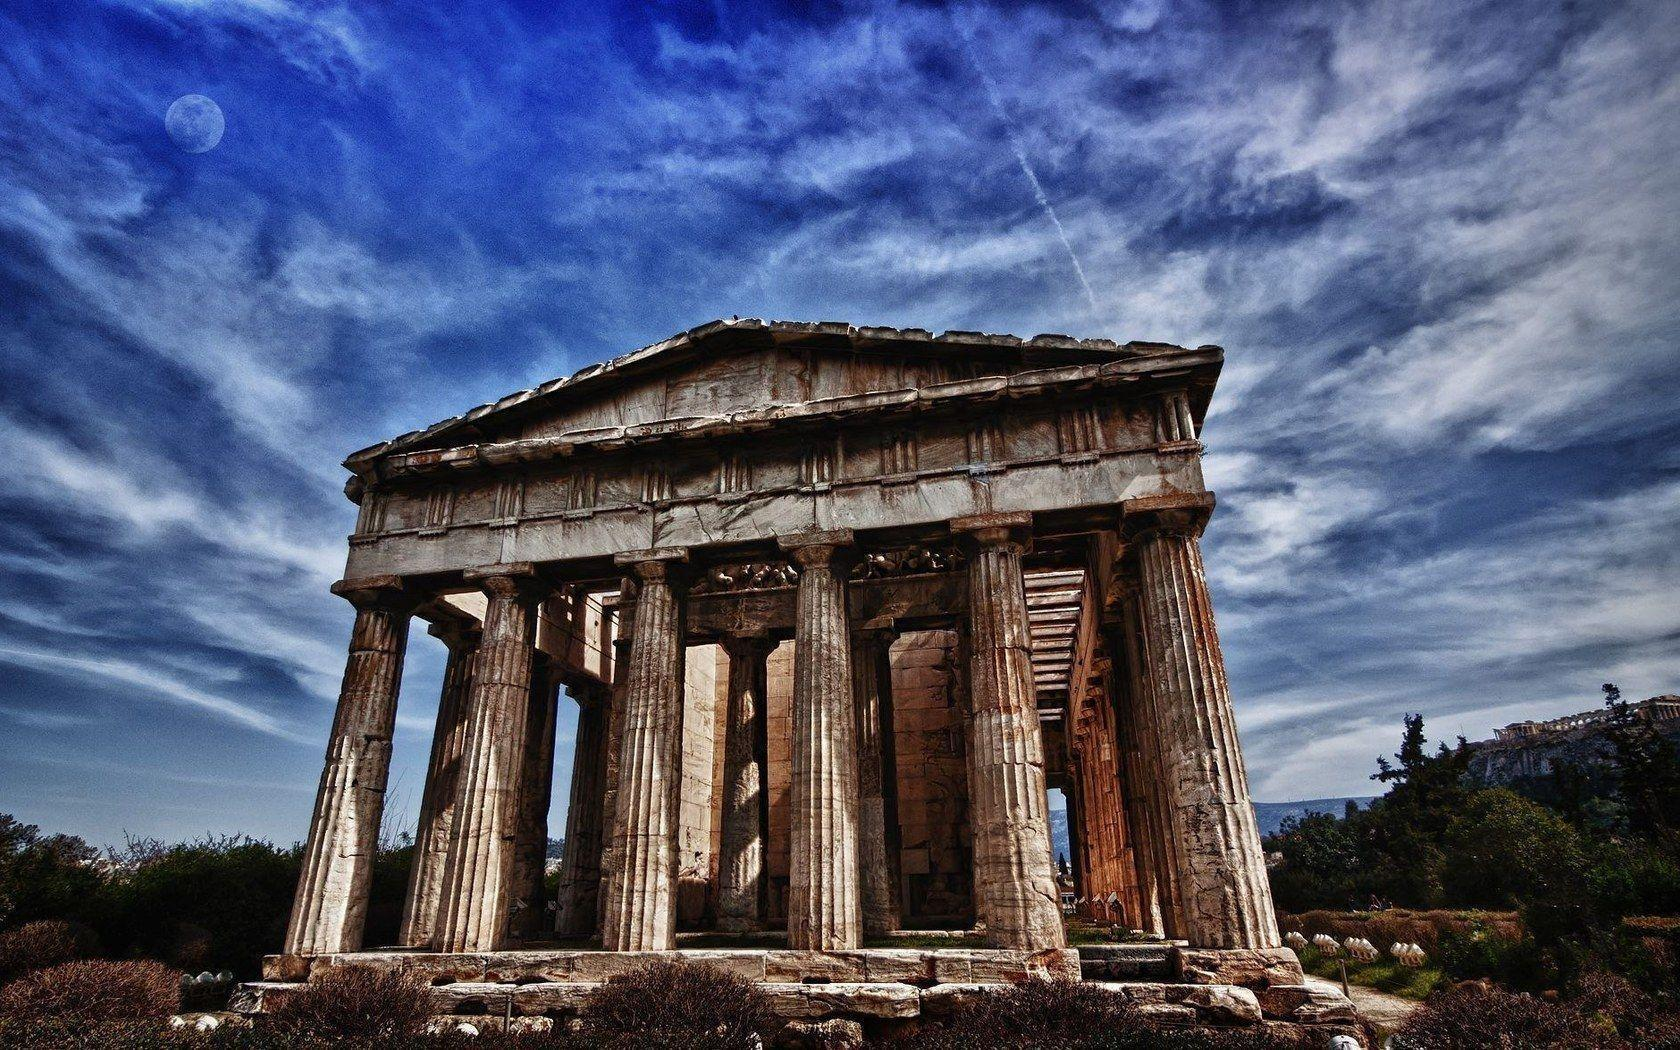 Download wallpapers city, Athens, Parthenon, Attraction free